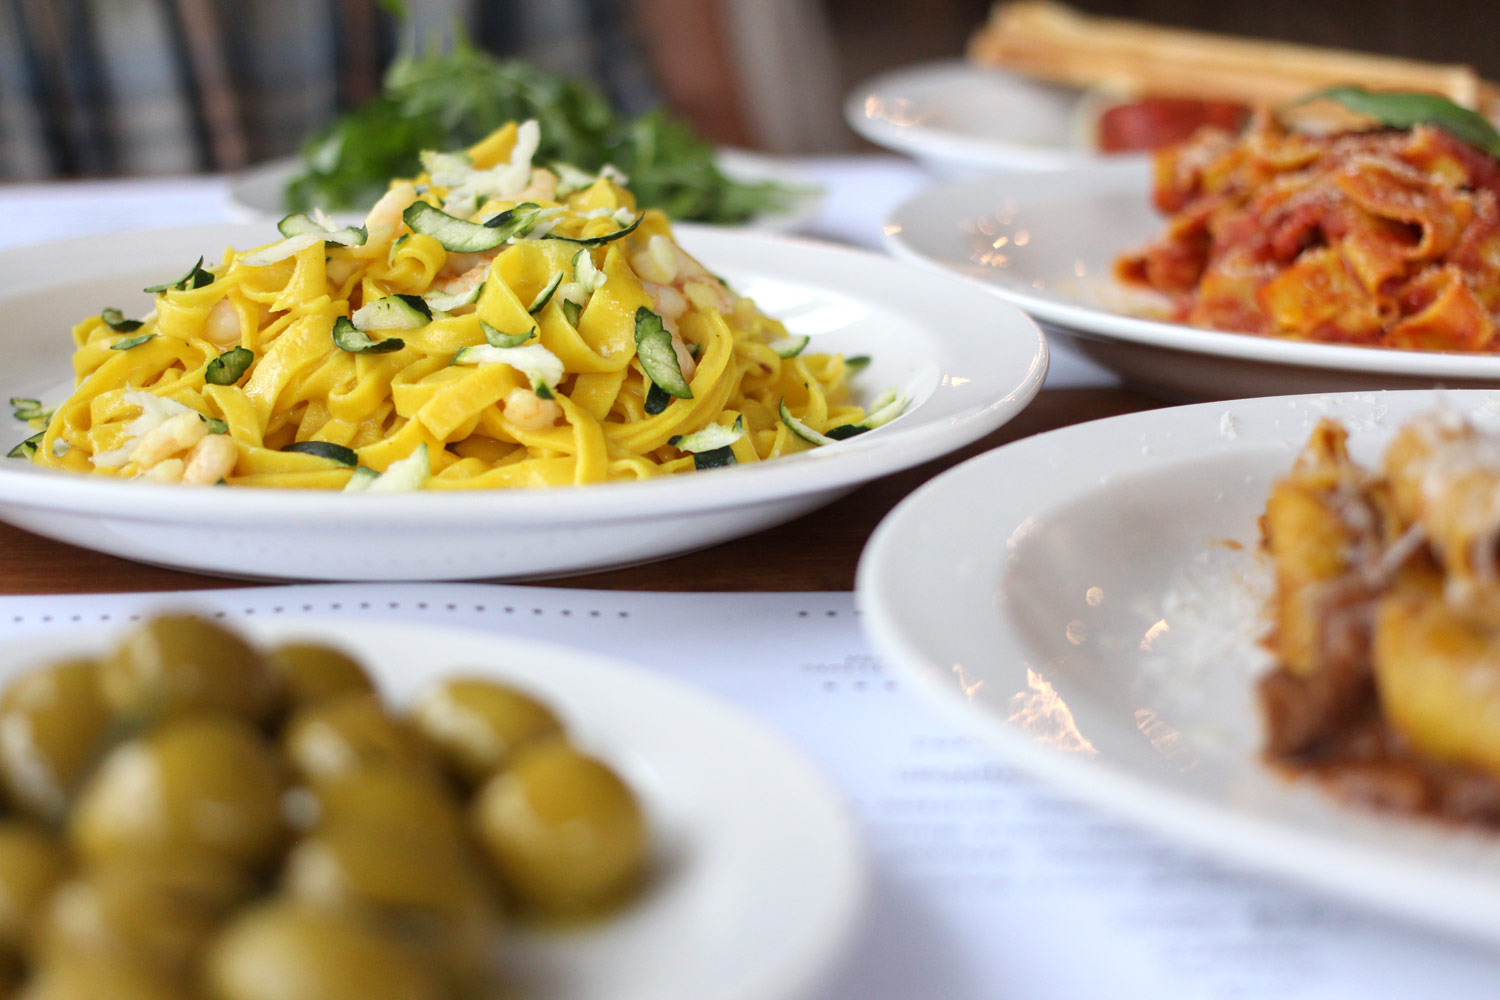 zucchini-pasta-bar-newcastle-NE1-restaurant-review-north-east-food-blogger-1